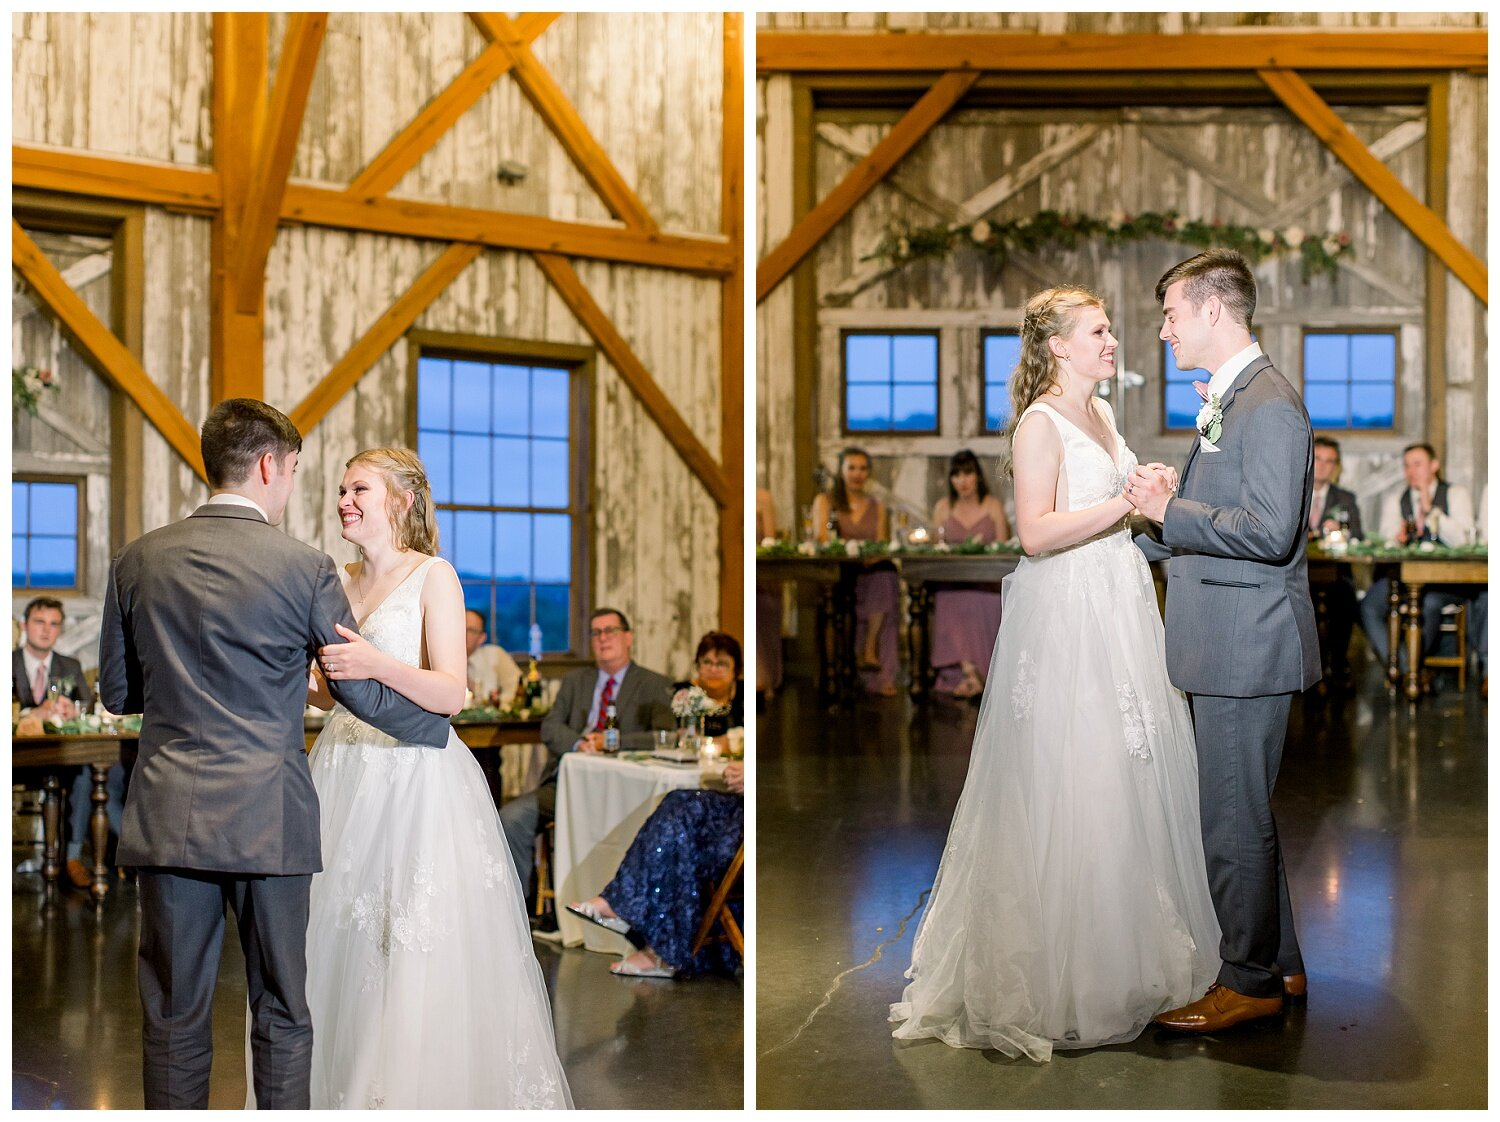 Weston-Red-Barn-Farm-Timber-Barn-Wedding-S+Z-0811-Elizabeth-Ladean-Photography_photo-_9748.jpg